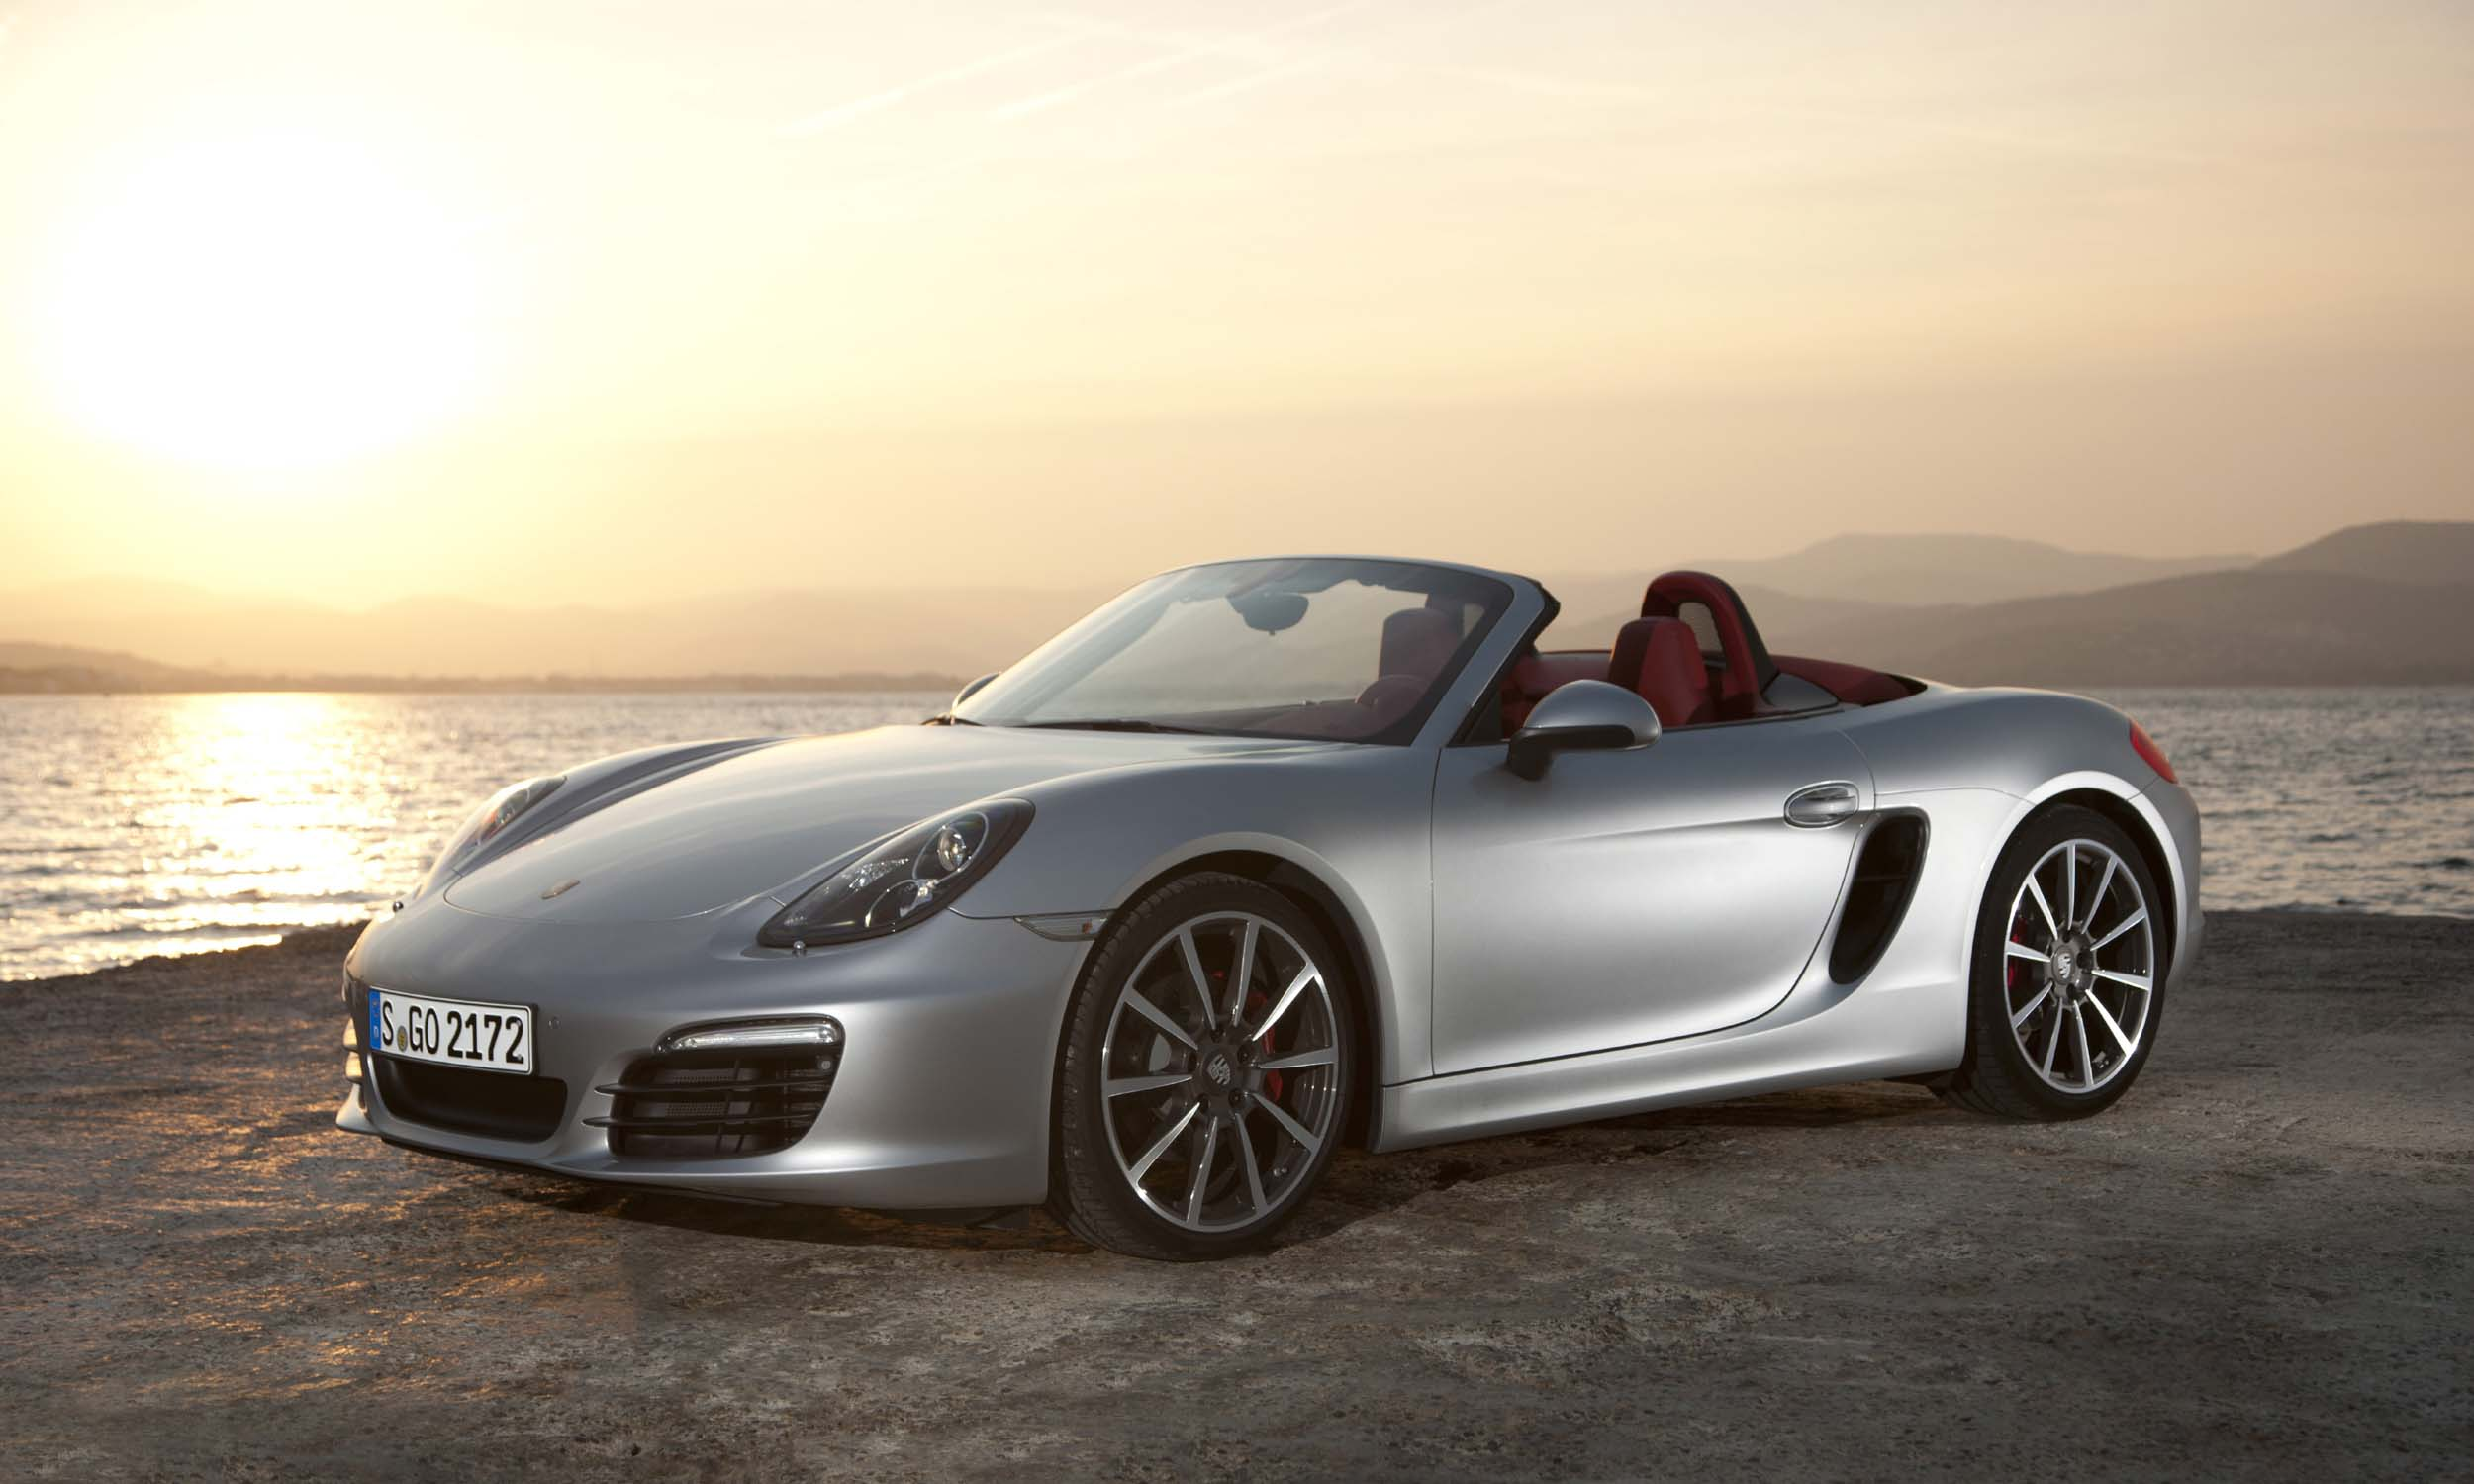 © Porsche Cars North America, Inc.